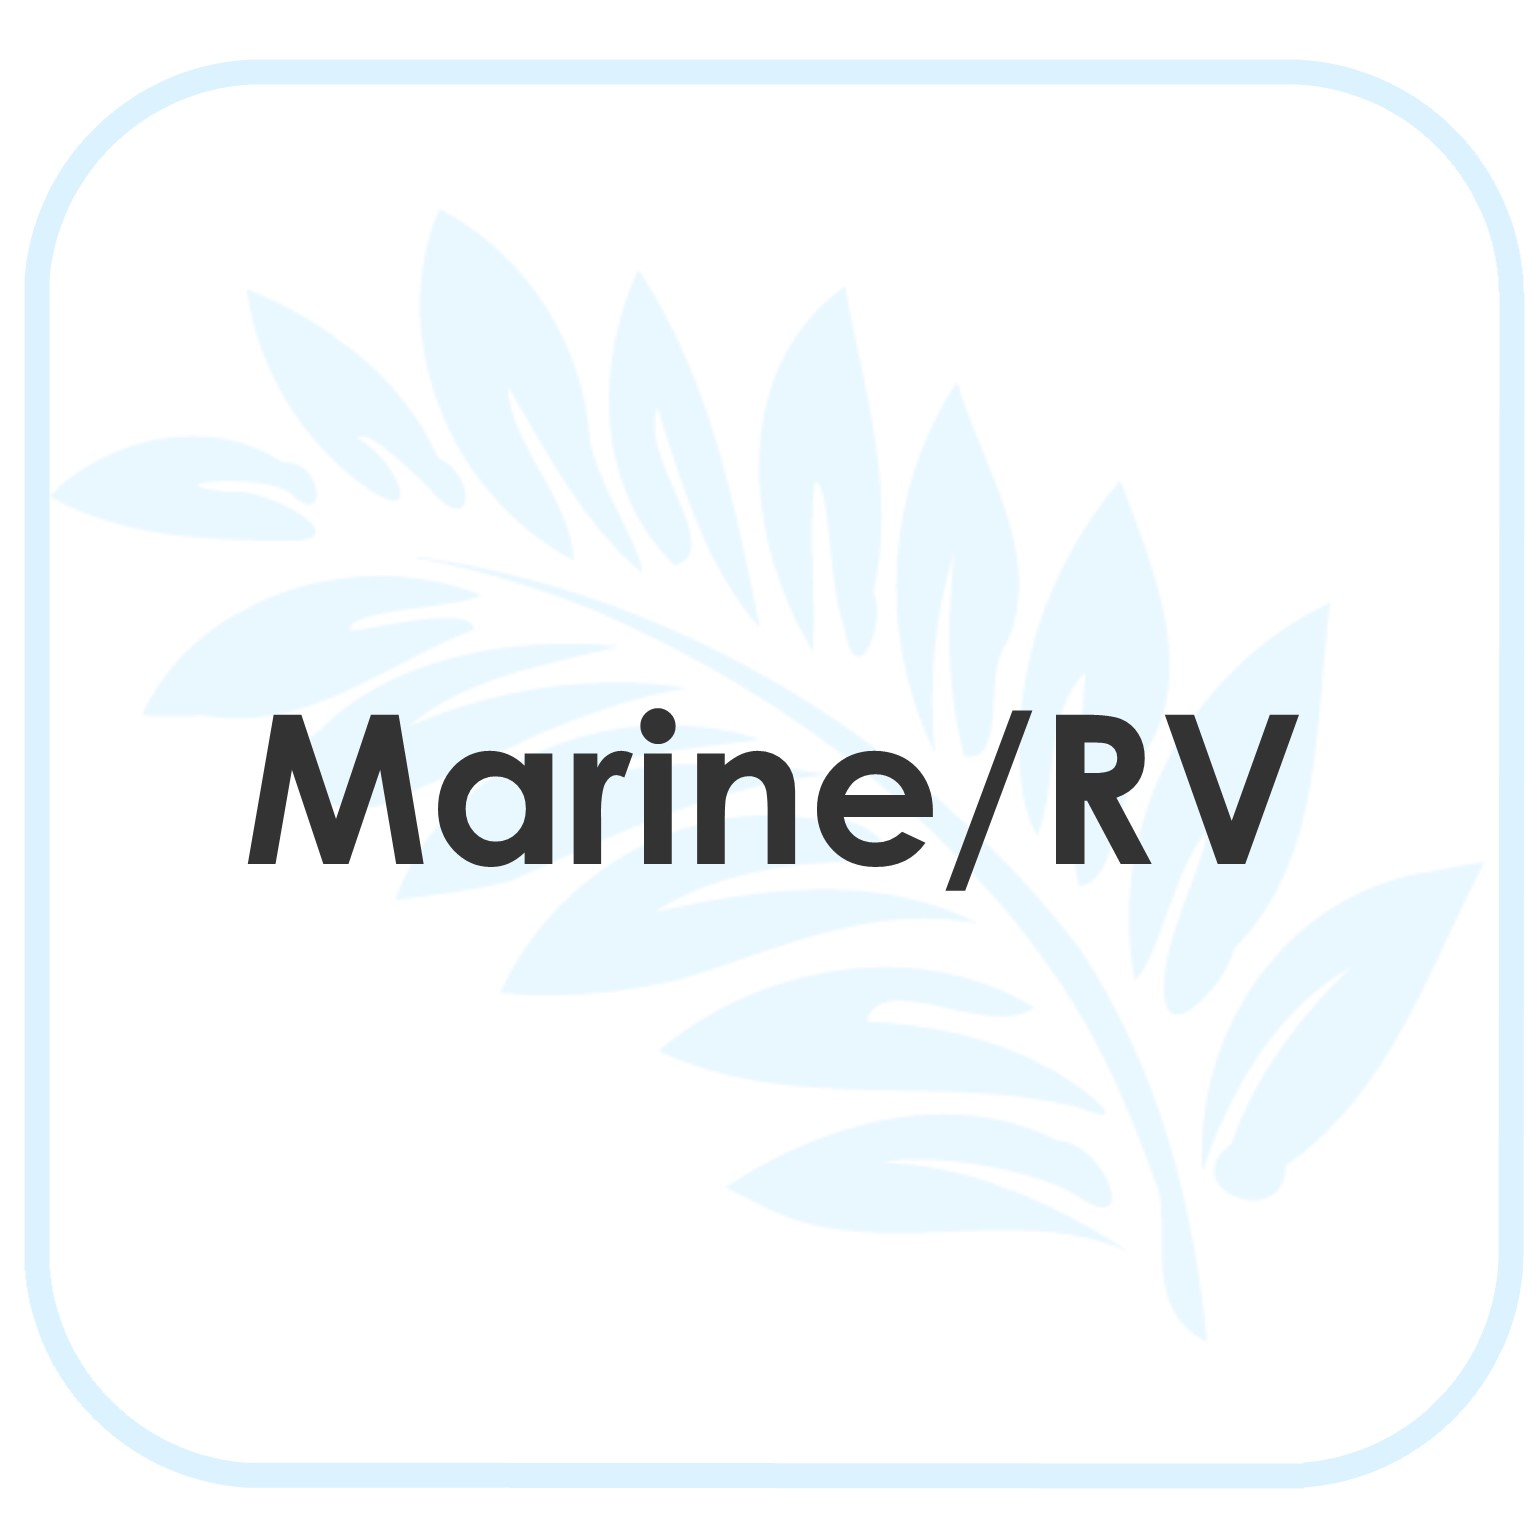 Marine/RV Product Instructions